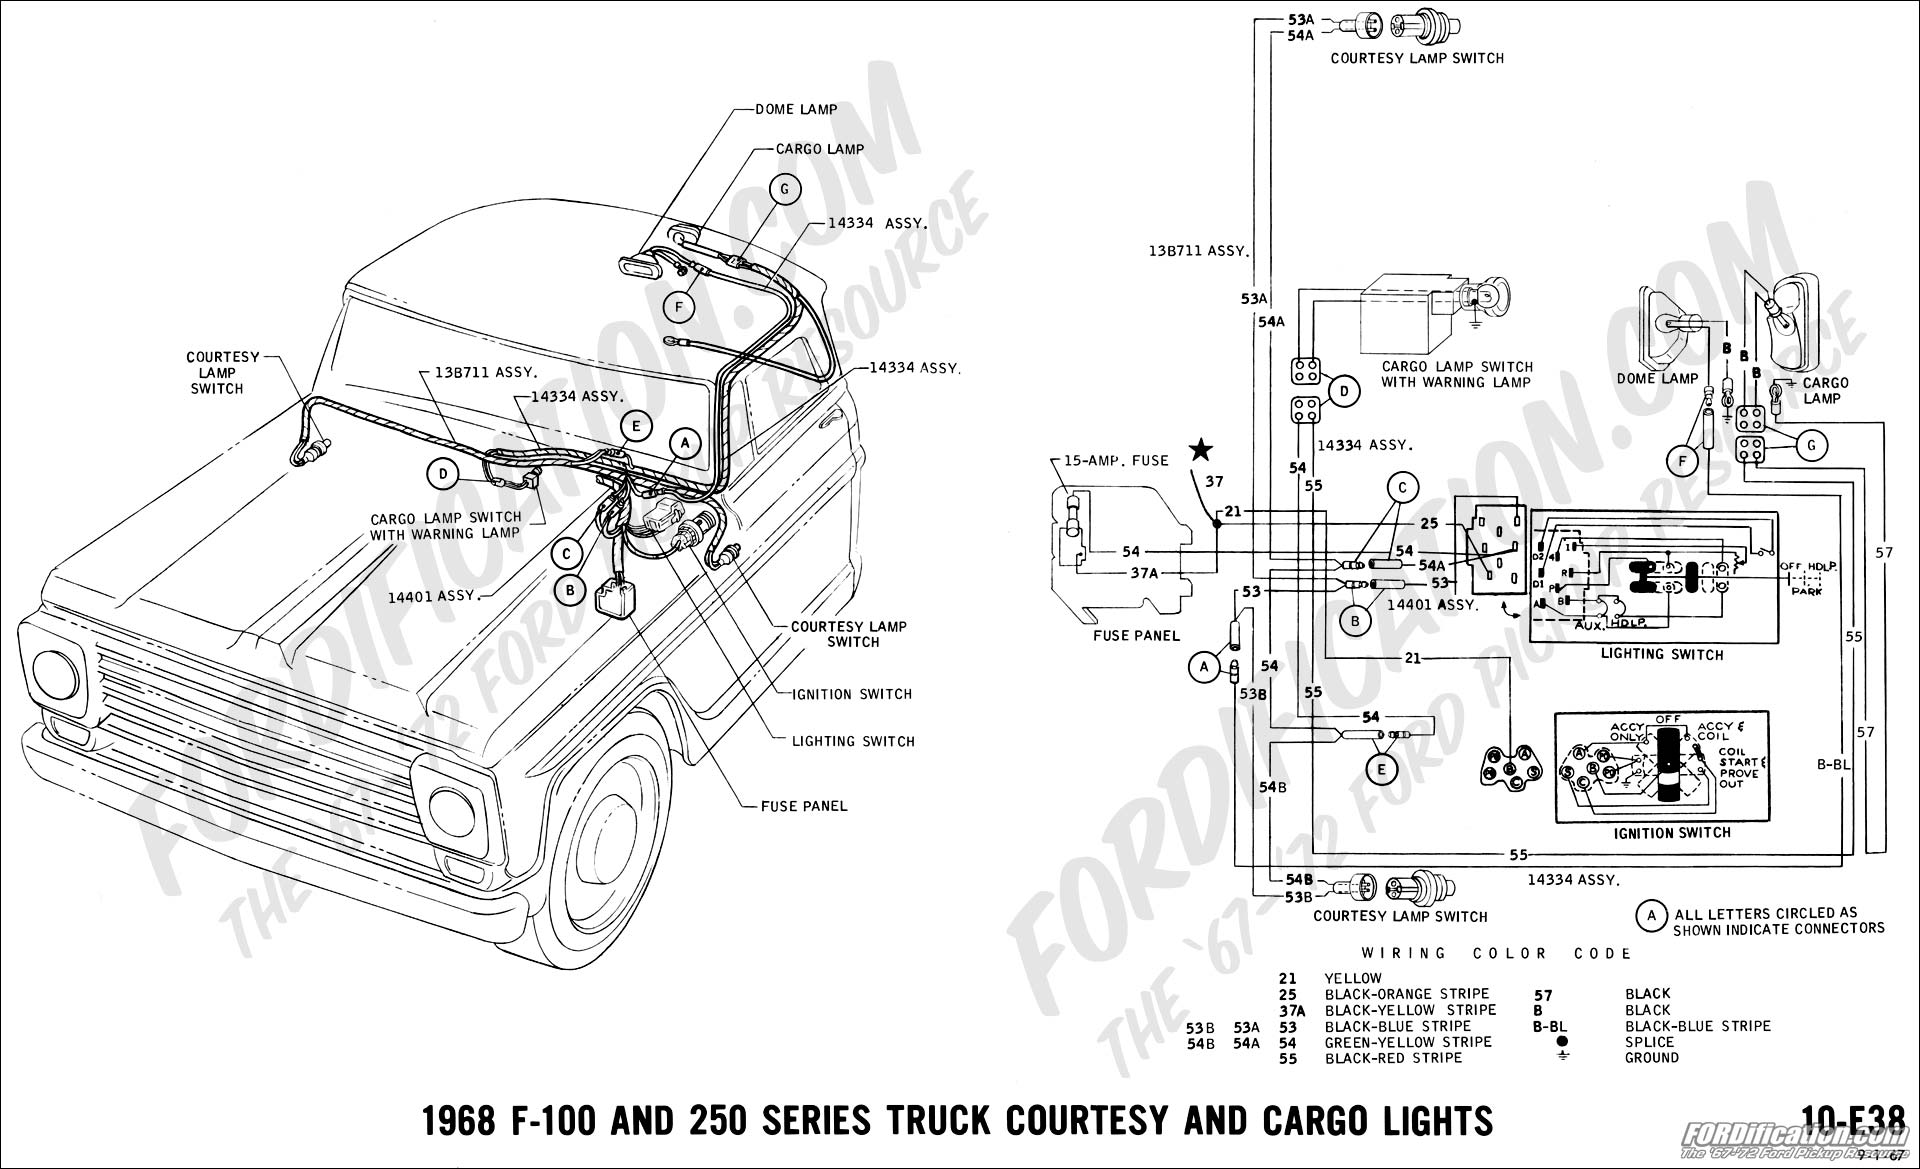 68 40 ford truck technical drawings and schematics section h wiring camper wiring harness diagram at nearapp.co